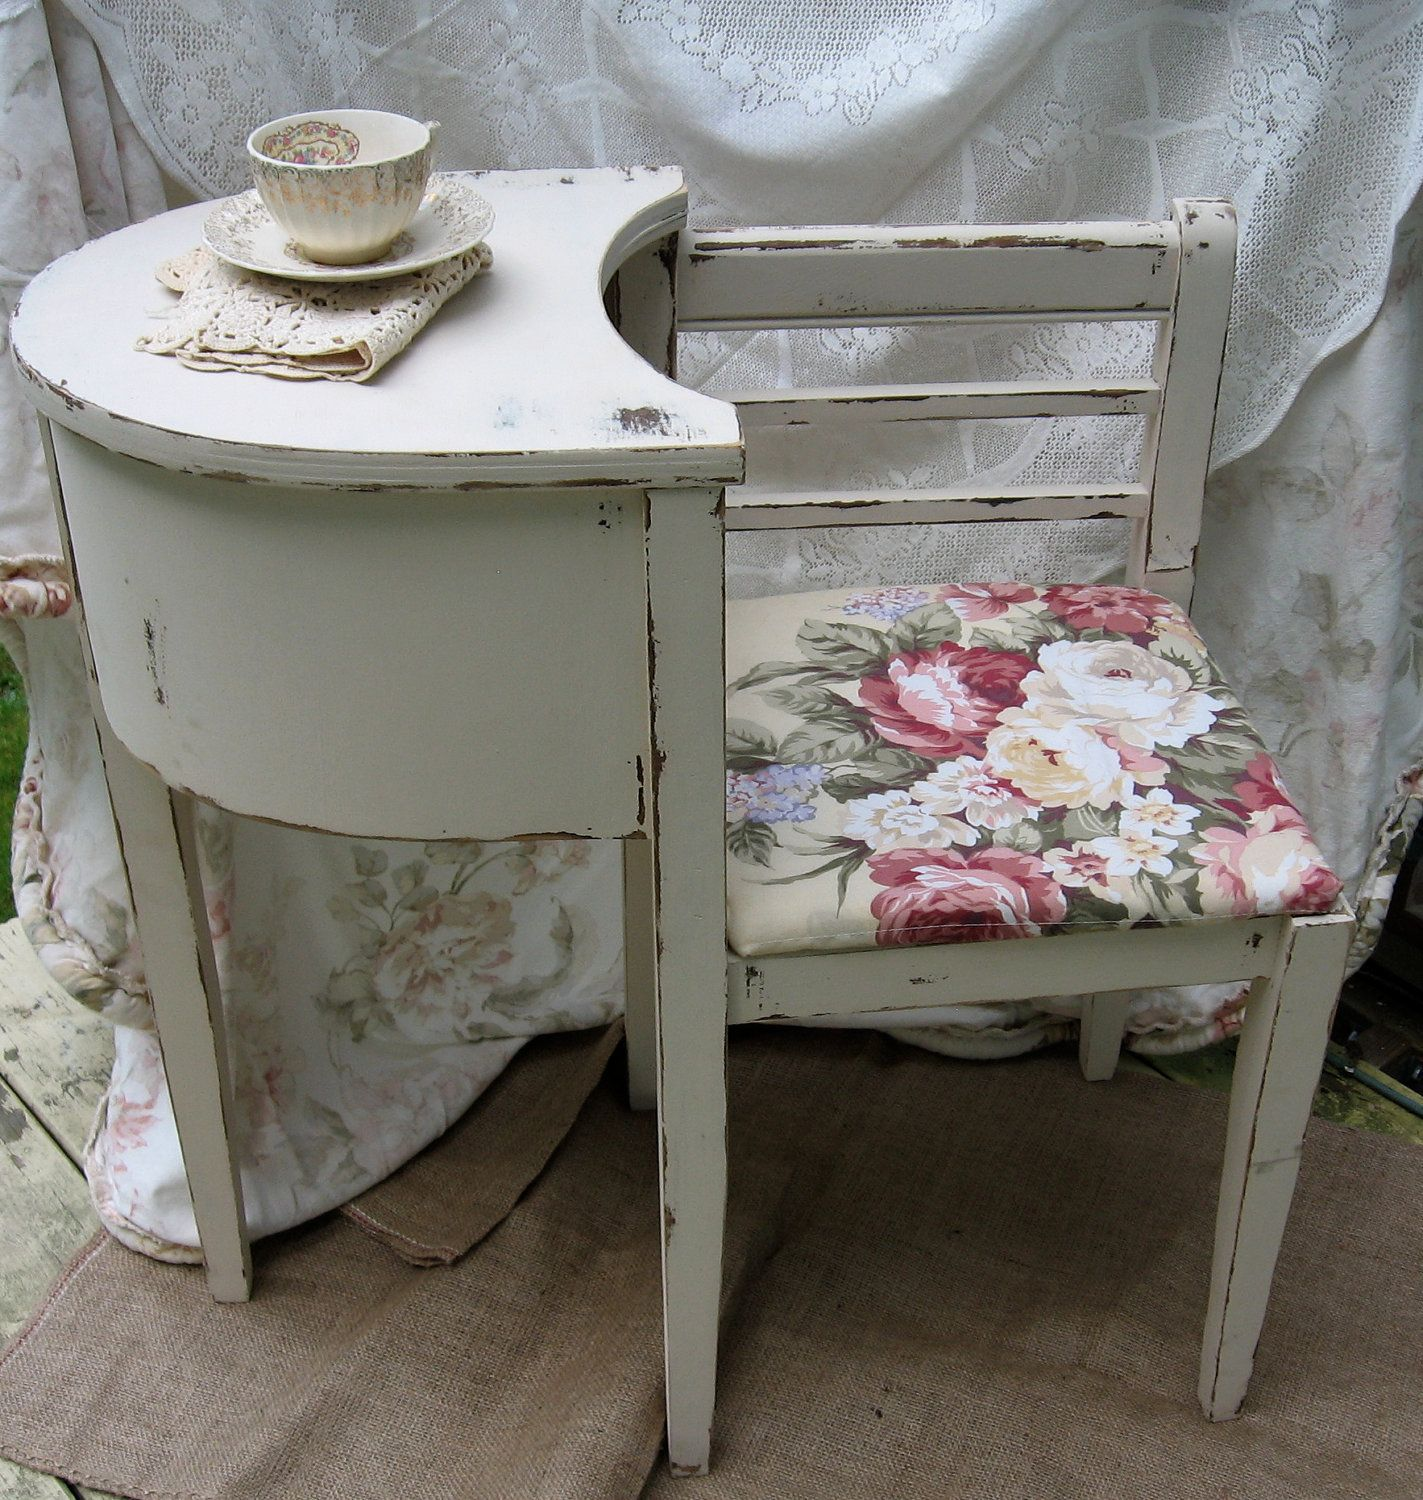 RESERVED Gossip Bench Telephone Stand Gossip seat Shabby Chic Telephone  gossip table vintage 1940's - RESERVED Gossip Bench Telephone Stand Gossip Seat Shabby Chic